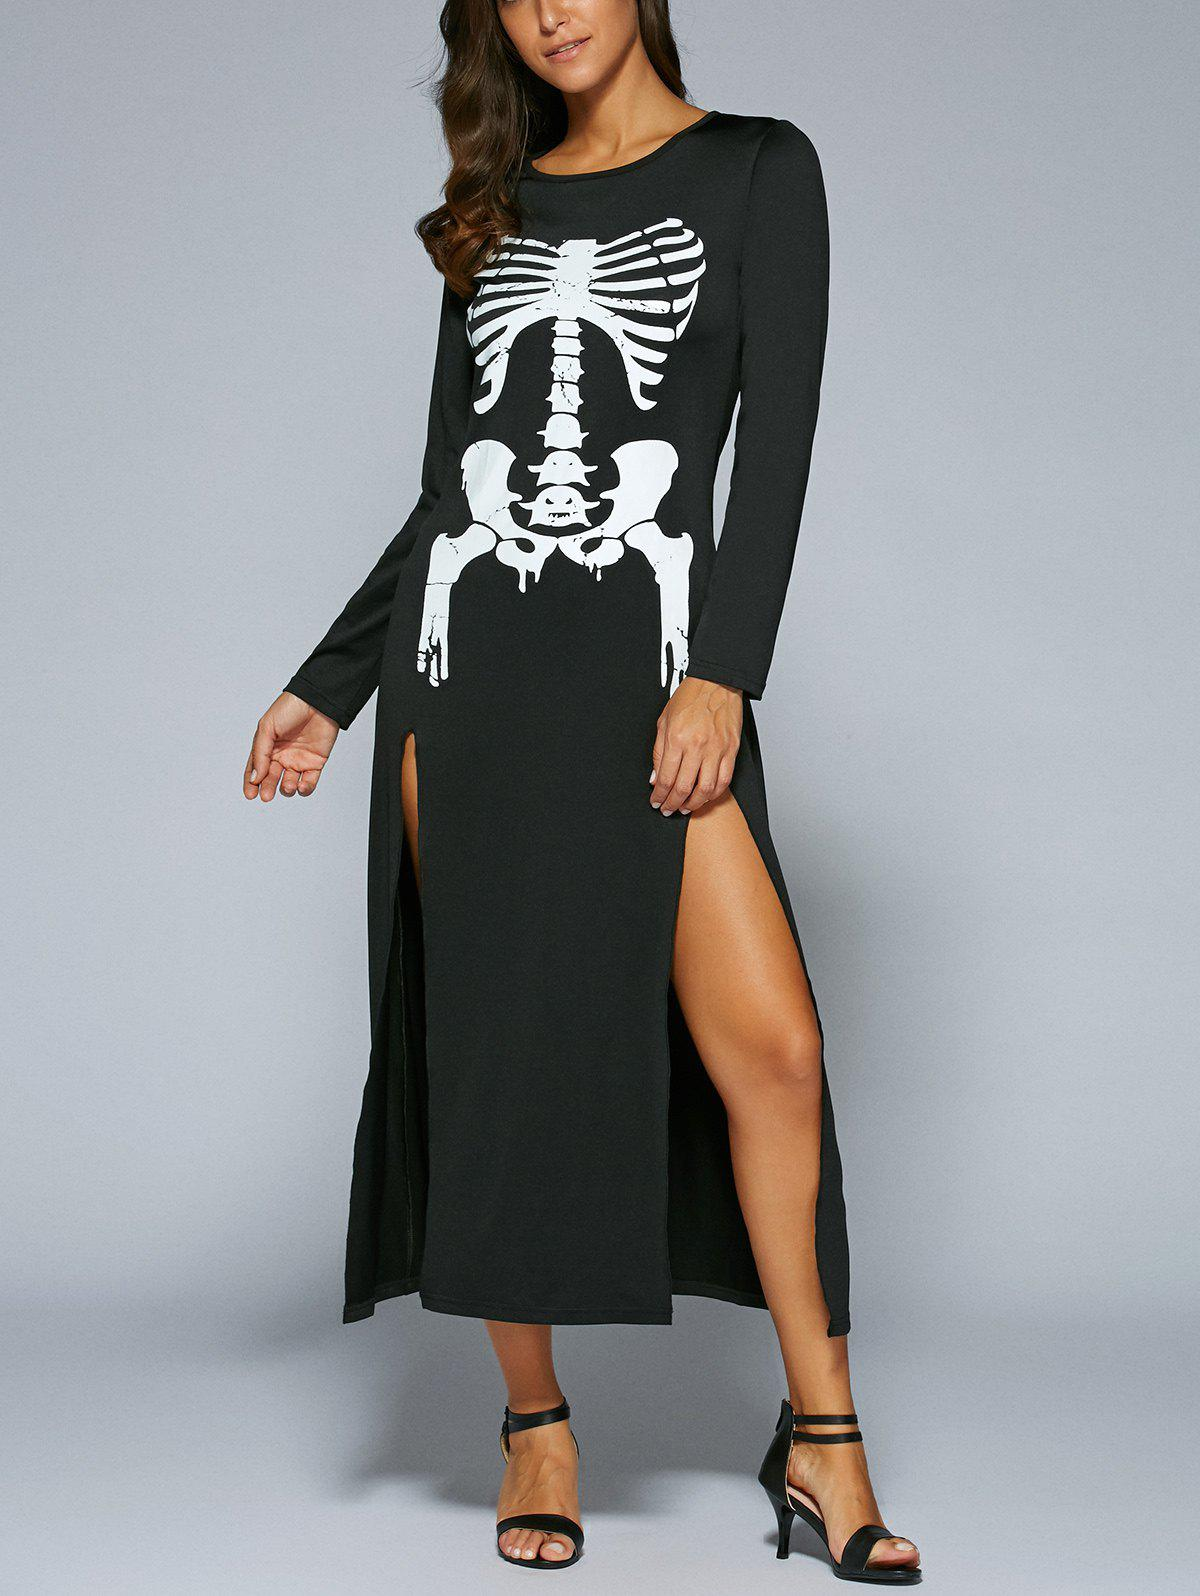 b6e63574466d 33% OFF] Halloween Long Sleeve Skeleton Print High Slit Maxi Dress ...